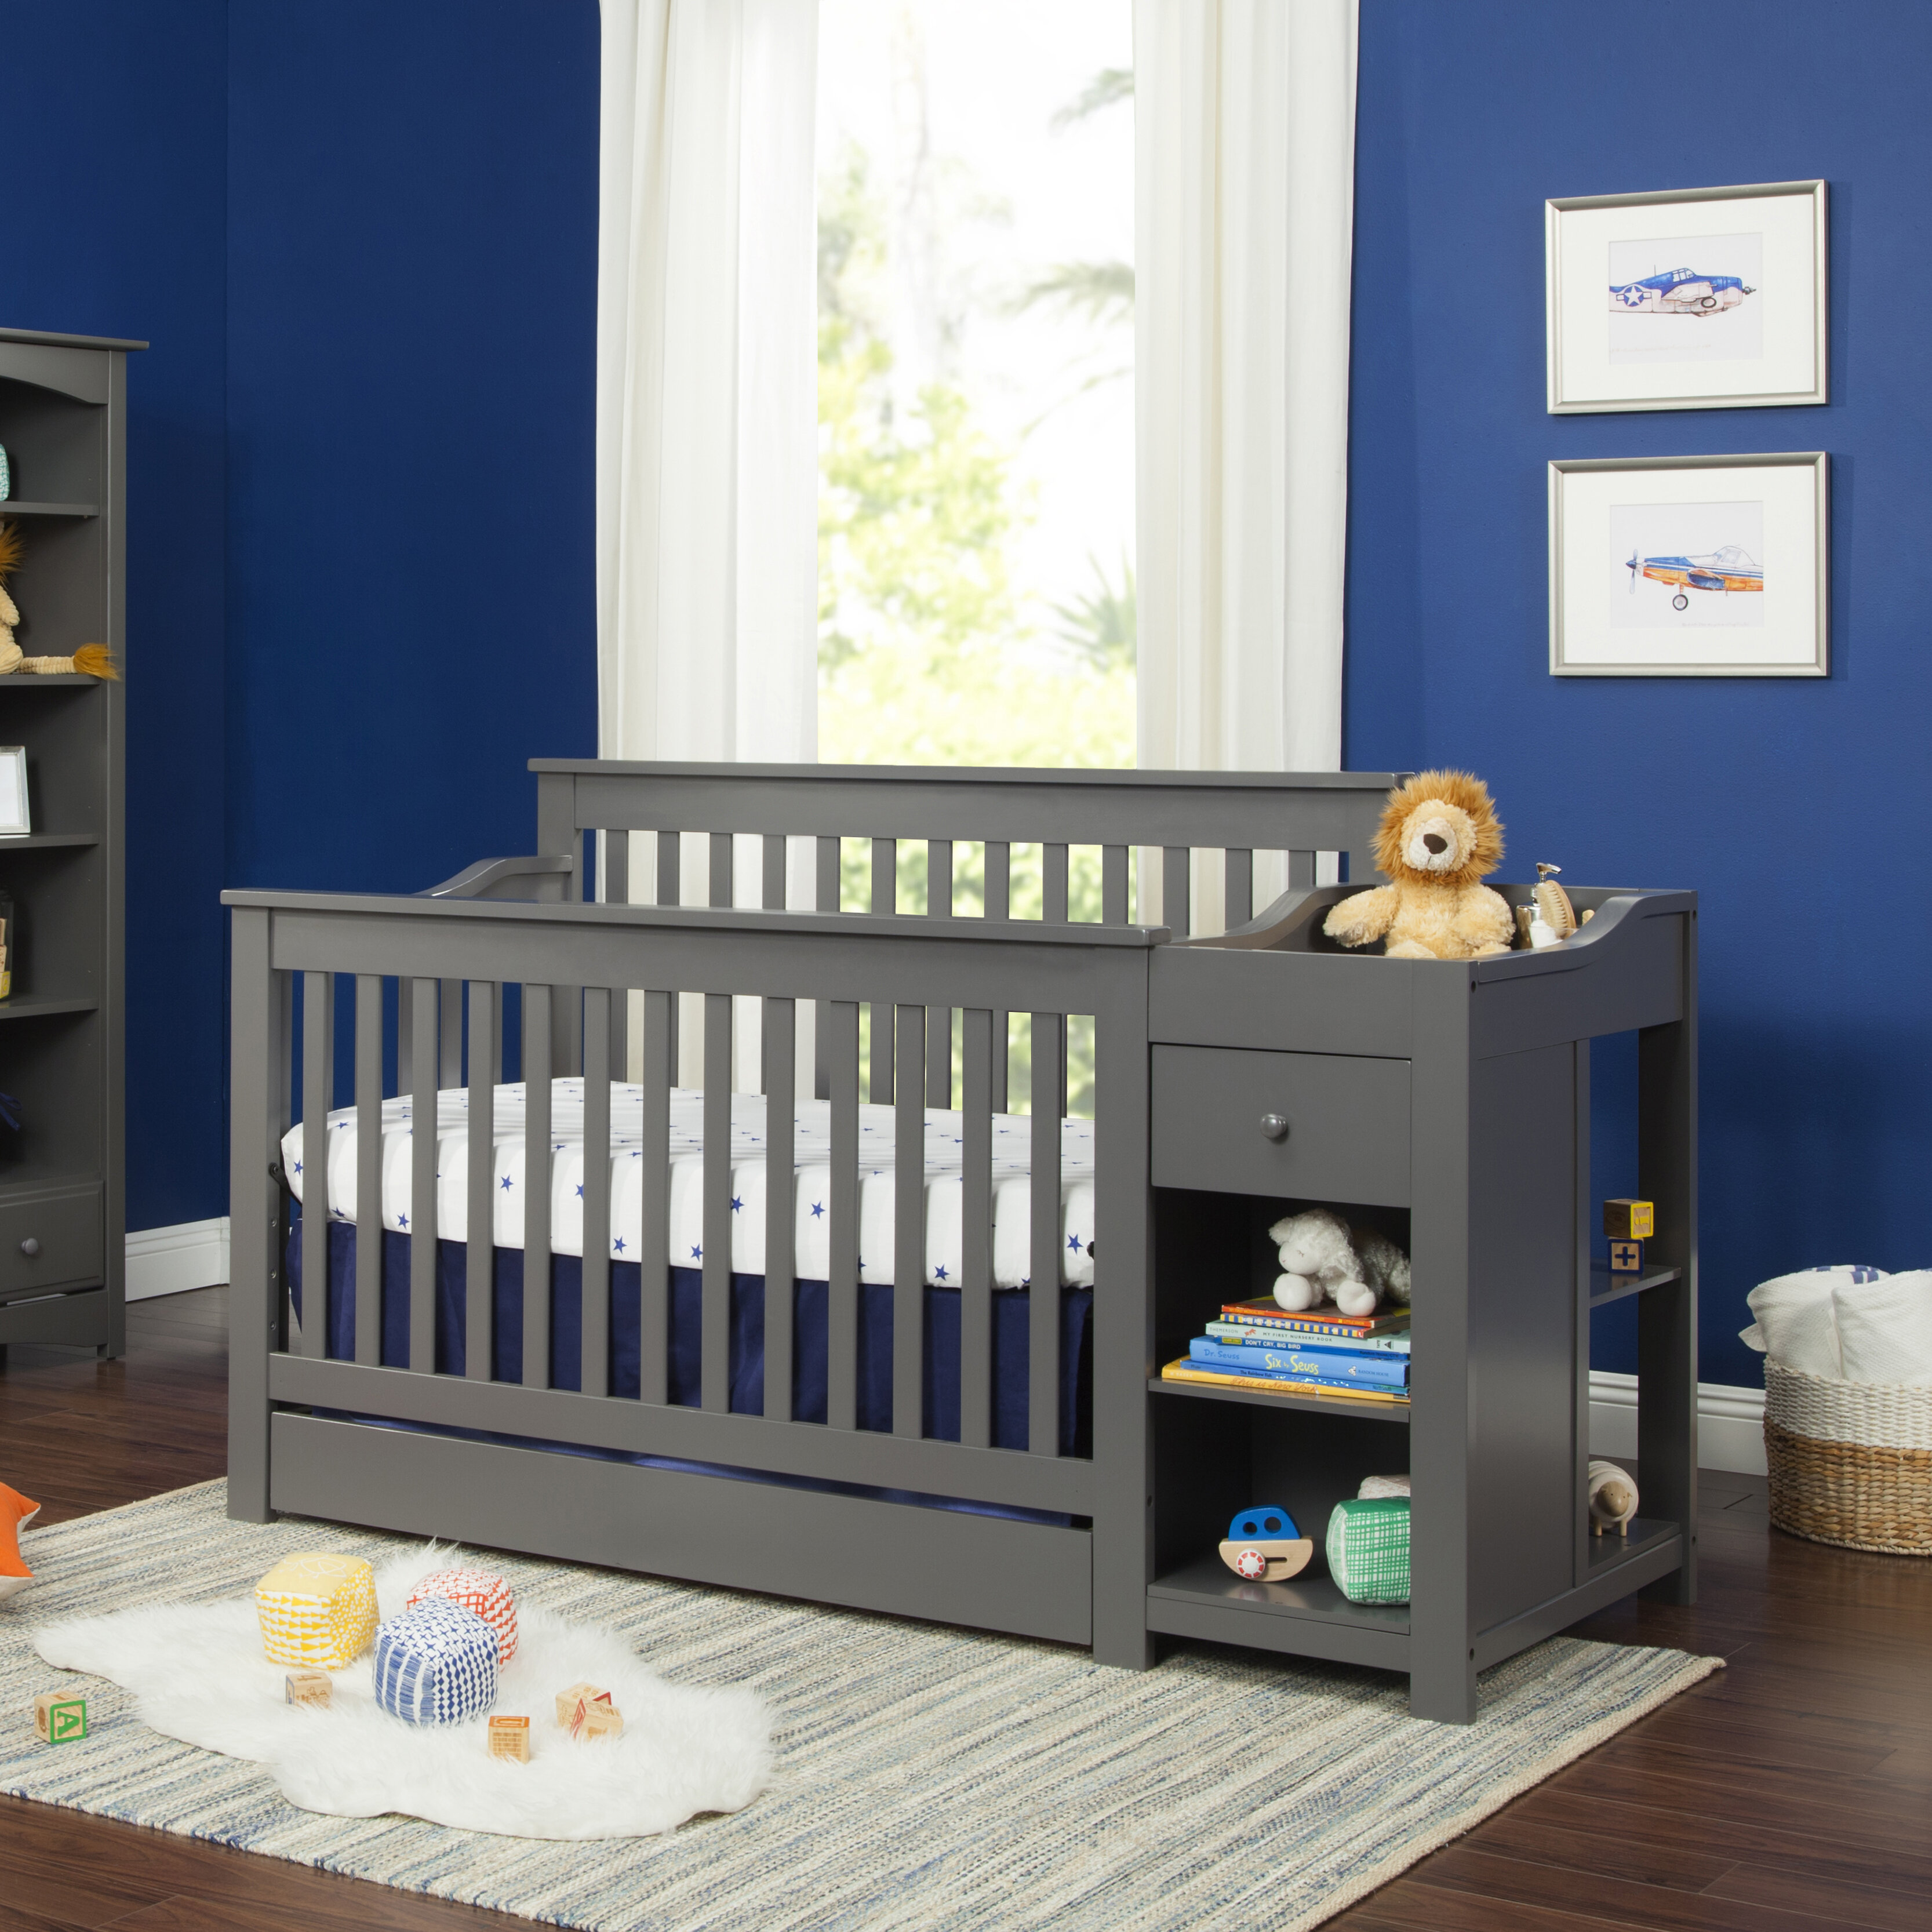 Piedmont 3-in-1 Convertible Crib and Changer with Storage